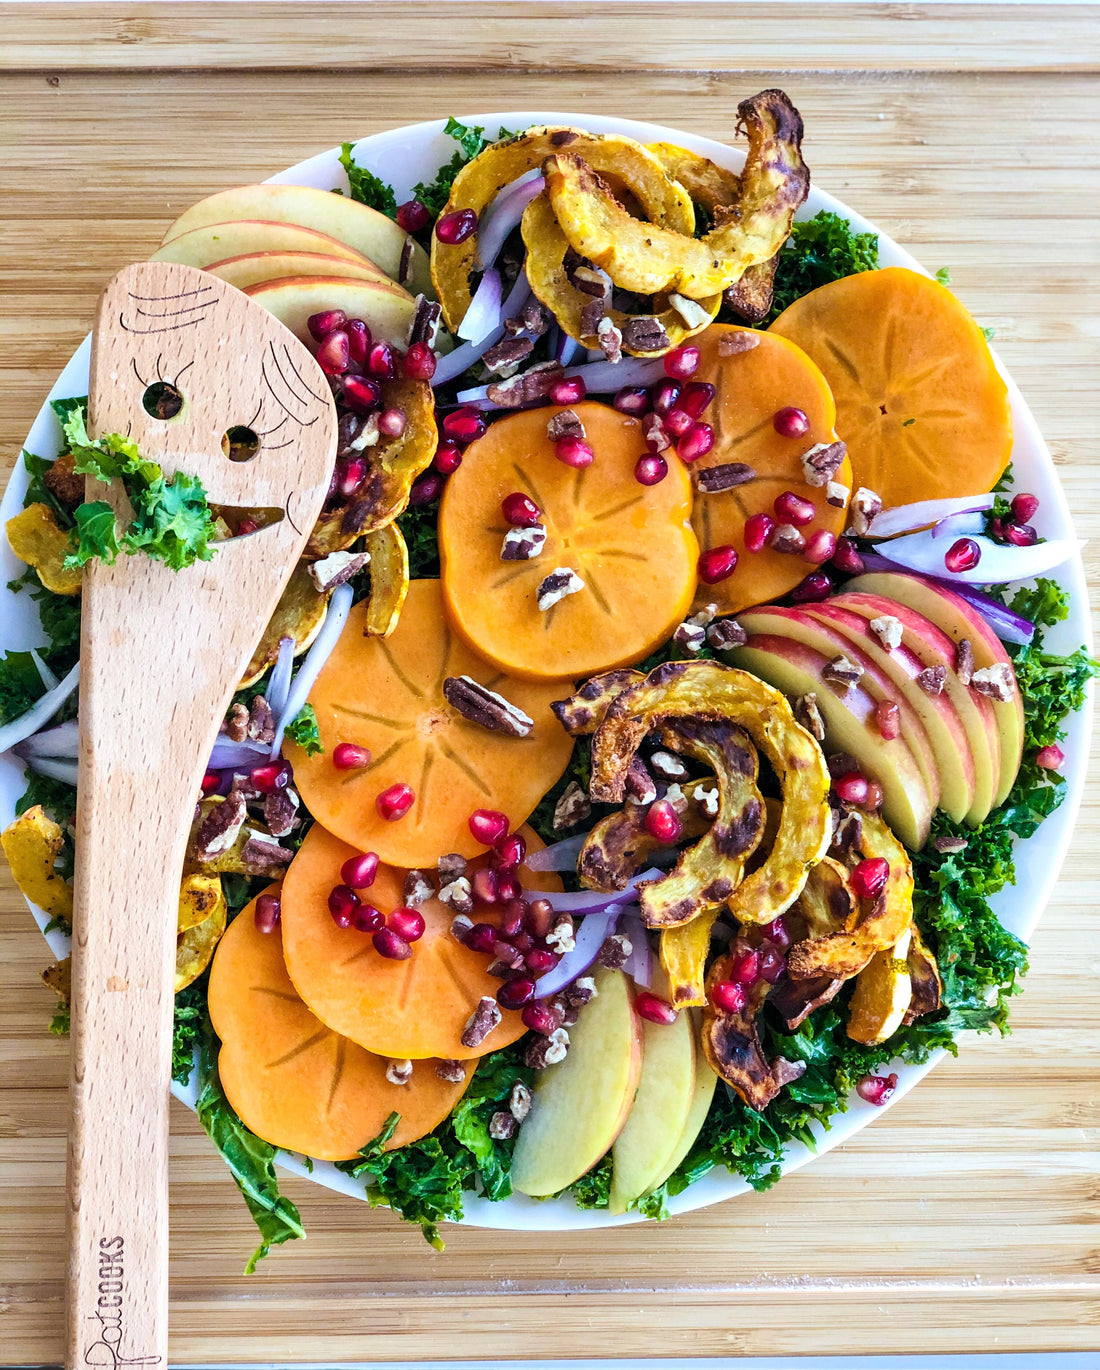 Kale Salad with Roasted Delicata Squash & Fall Fruits